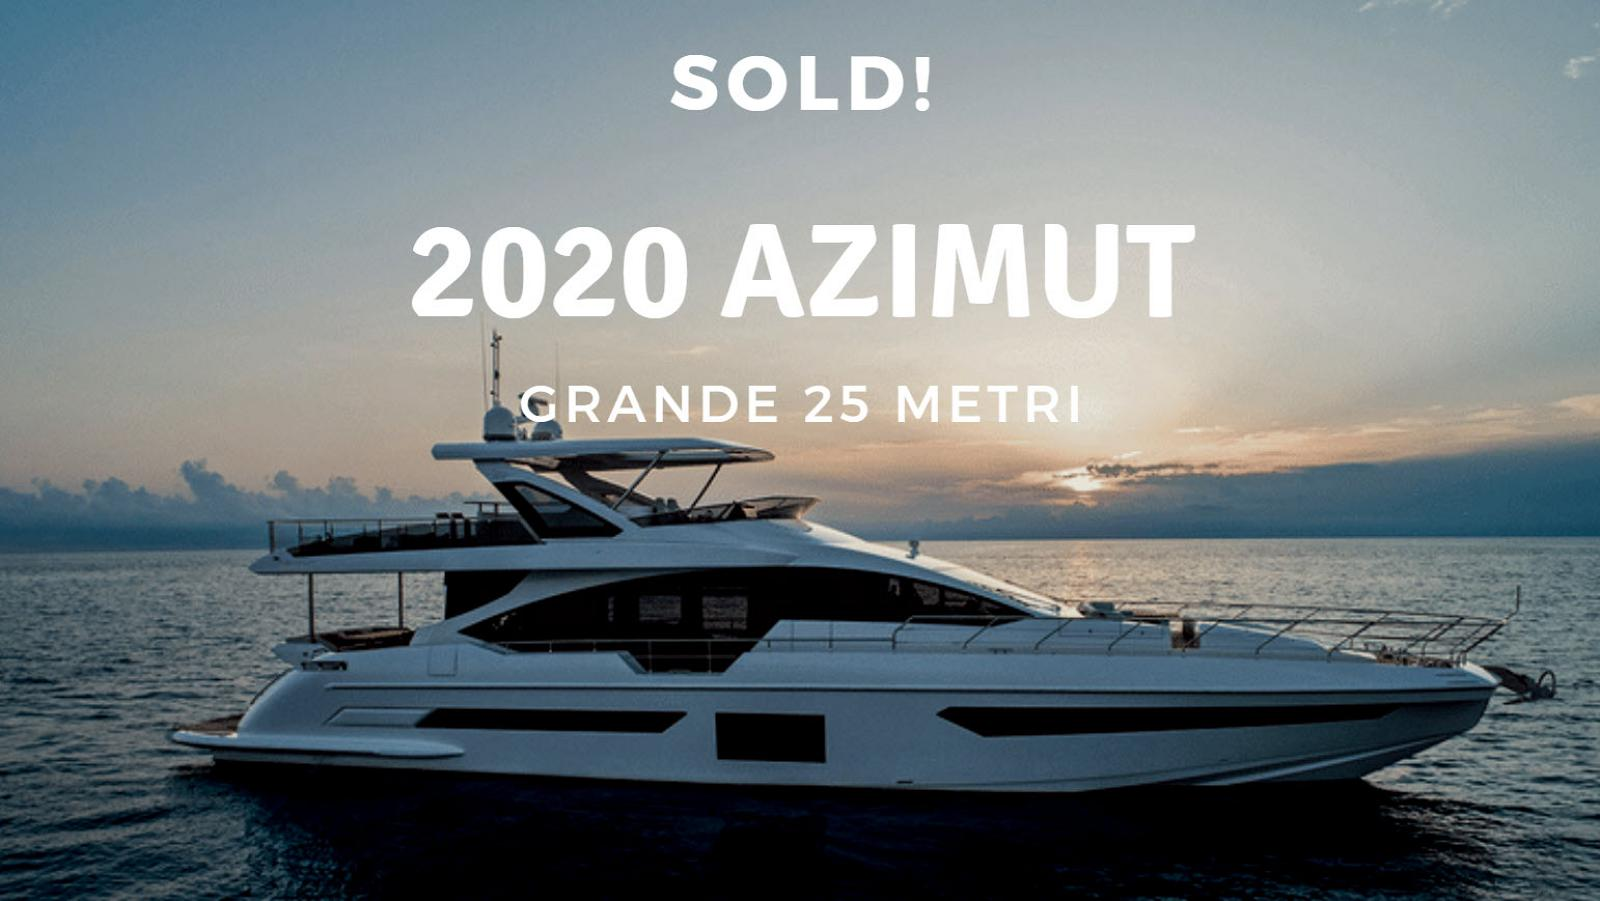 photo of Azimut Yachts Grande 25 Metri Sold By United Yacht Sales